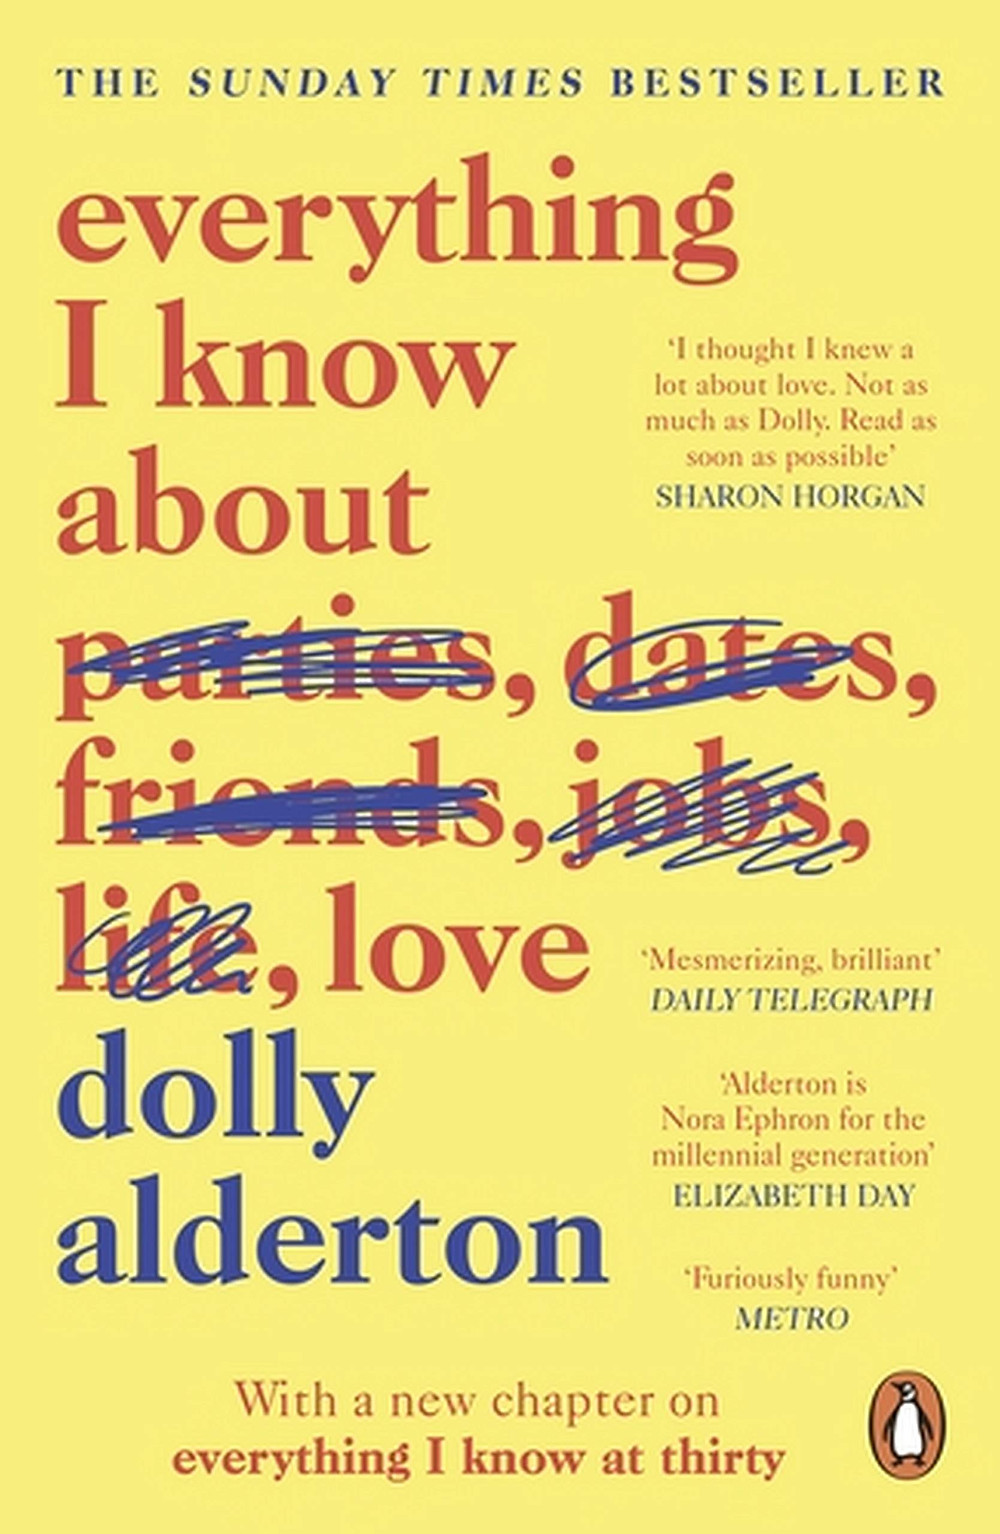 Everything I Know About Love Dolly Alderton Book Review Written by Han